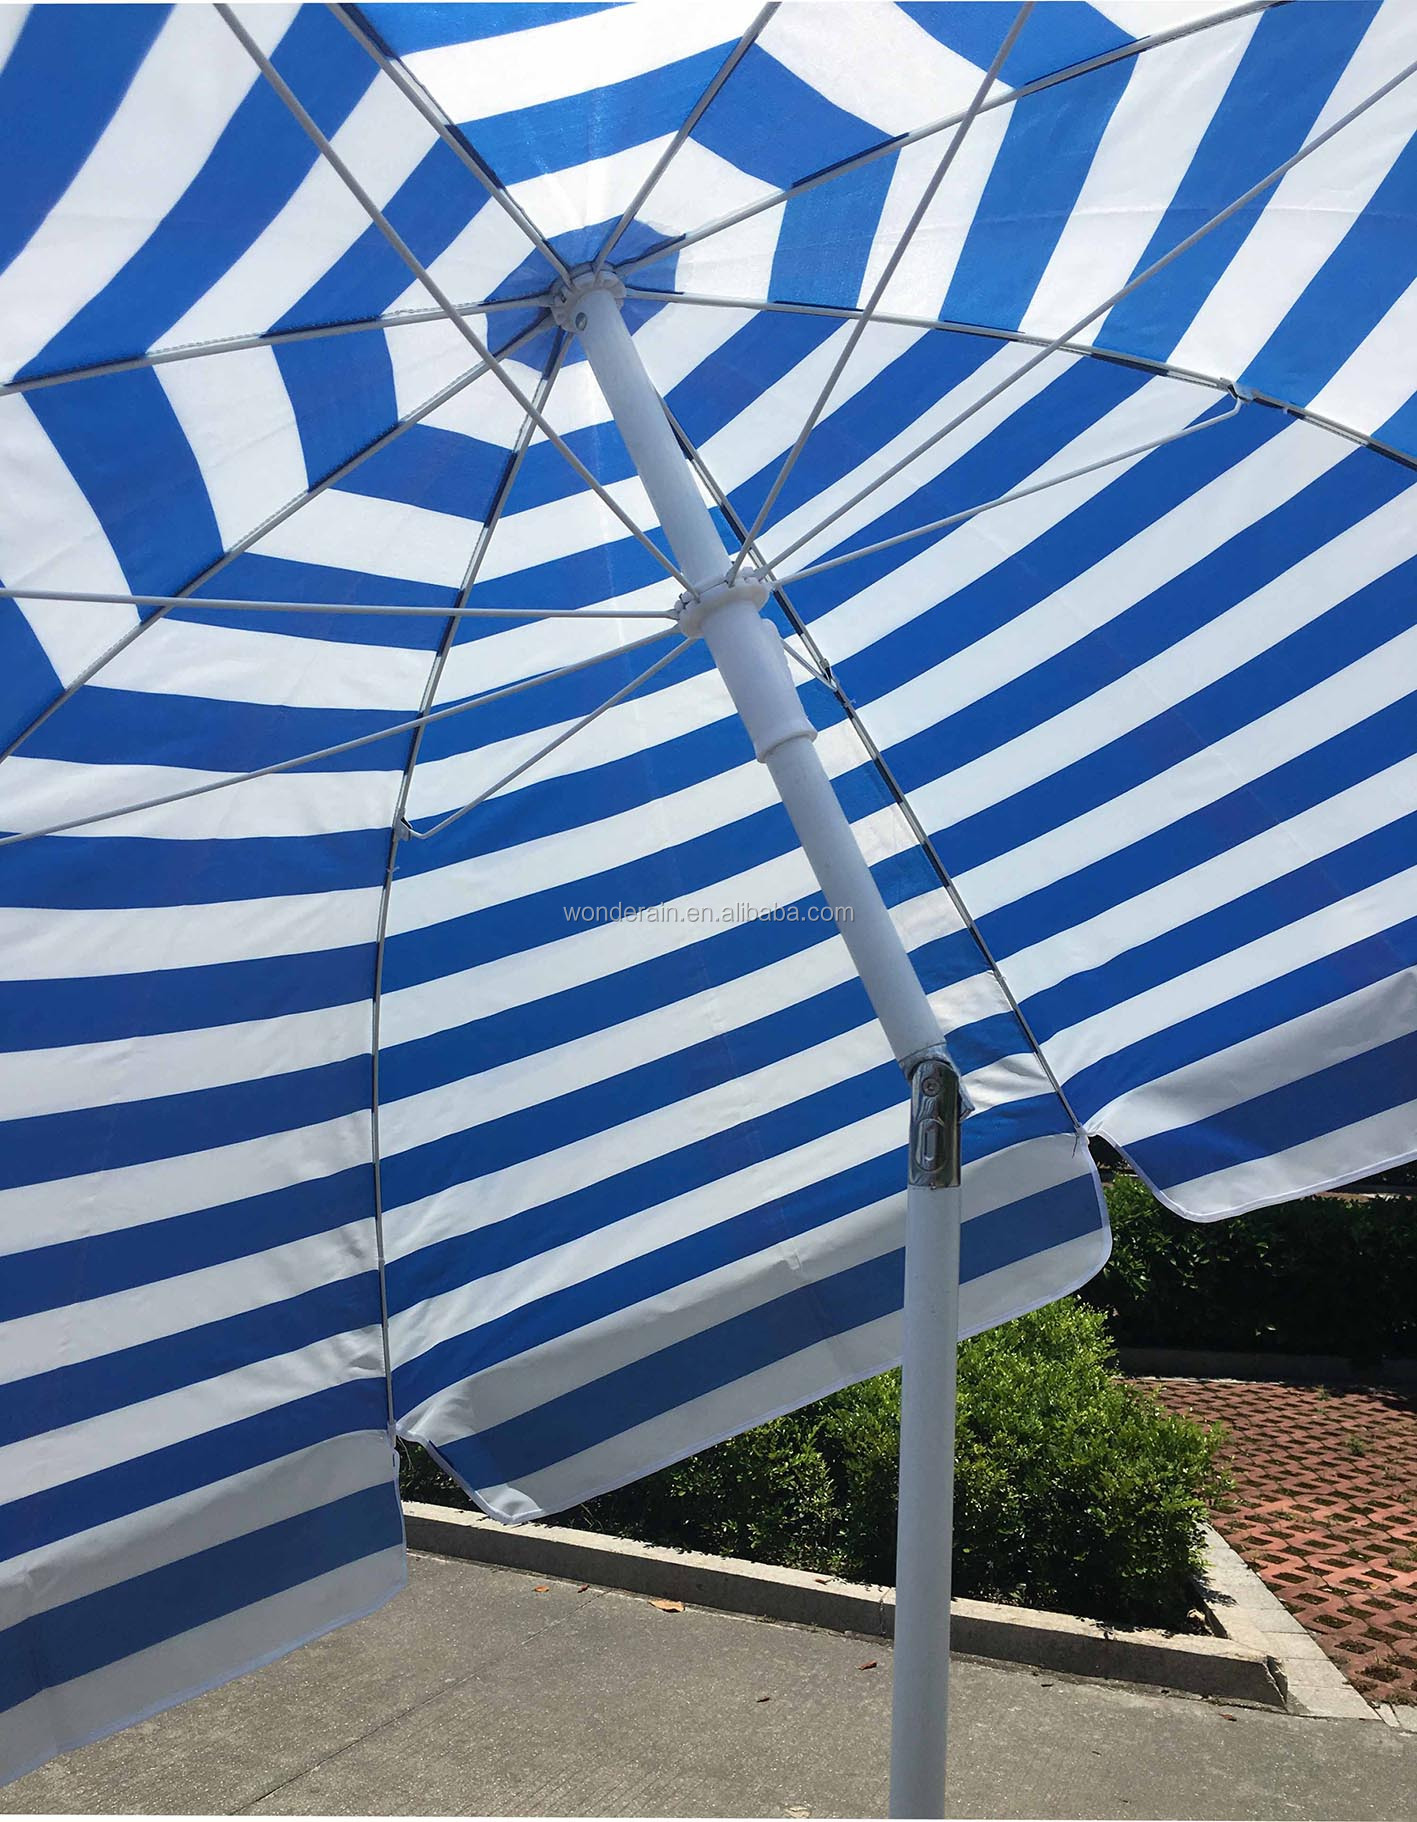 40inch sunshade and rainshade 180cm stripes  beach umbrella with tilt